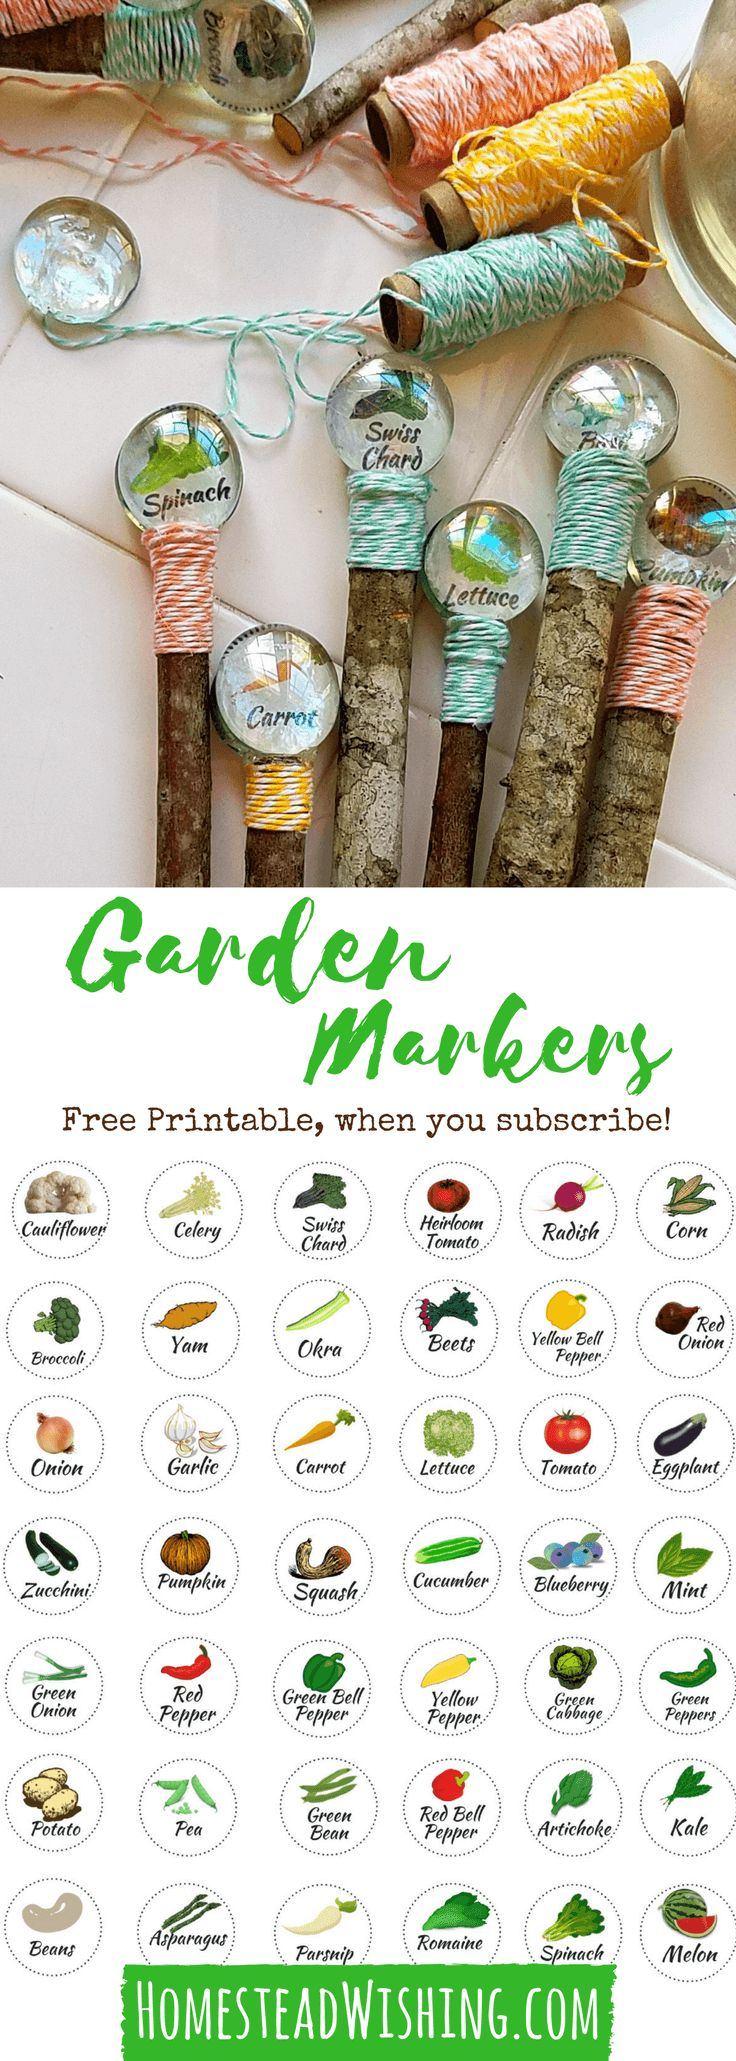 You can make your own adorable garden markers! Free for a limited time only. Time is running out! DIY Garden Markers - Printable Garden Markers - Cheap Garden Markers - Glass Gem Garden Markers - Garden Marker Tutorial | http://homesteadwishing.com/diy-garden-markers/ | Homestead Wishing, Author Kristi Wheeler | Garden-markers, DIY, Crafts, Garden-crafts |